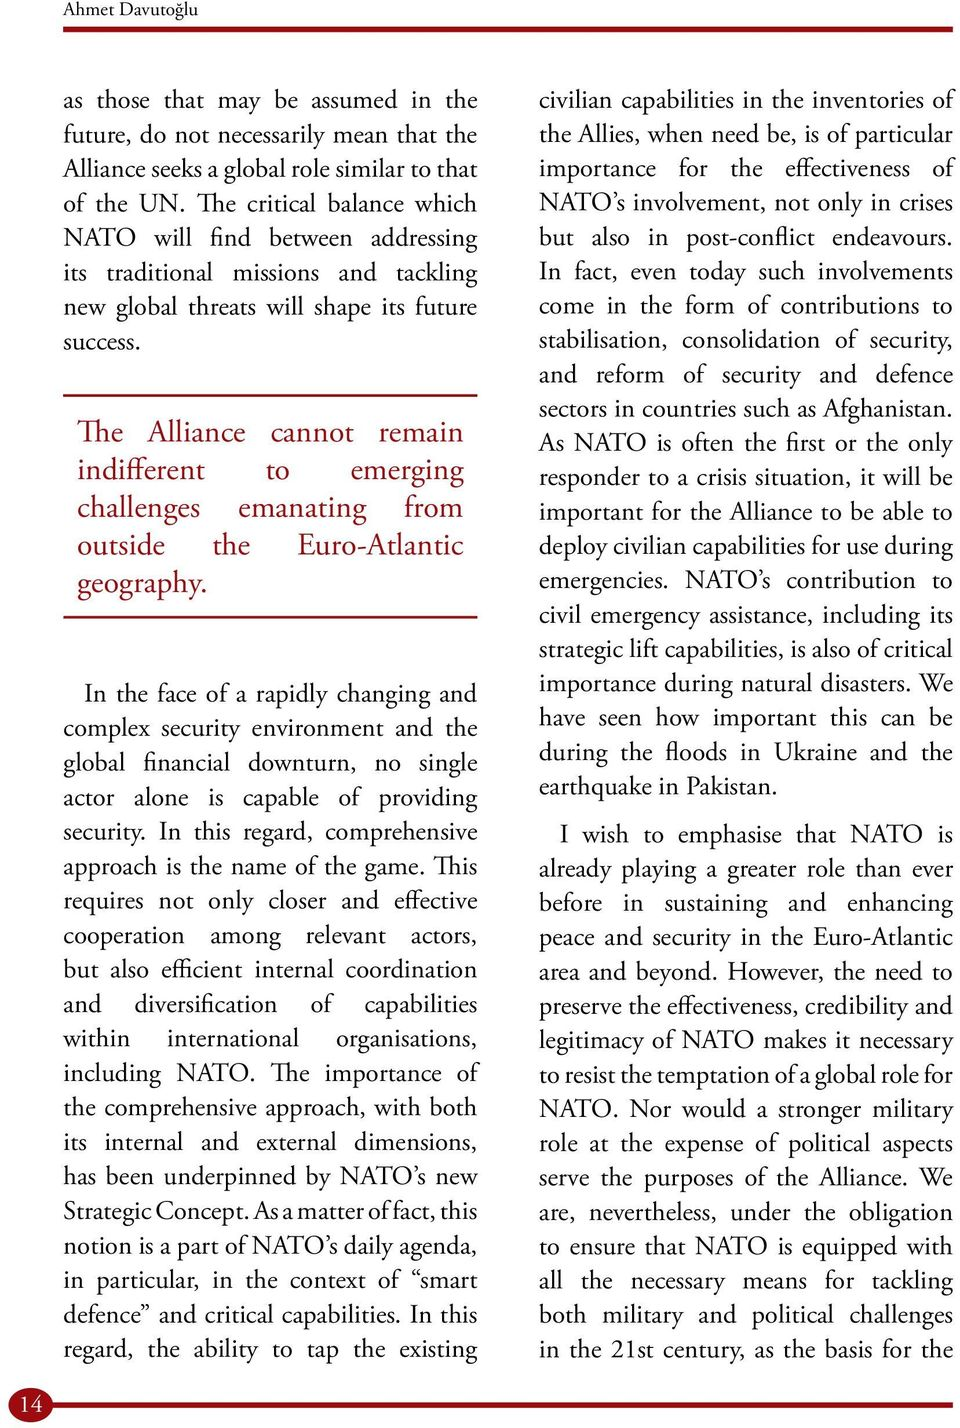 The Alliance cannot remain indifferent to emerging challenges emanating from outside the Euro-Atlantic geography.